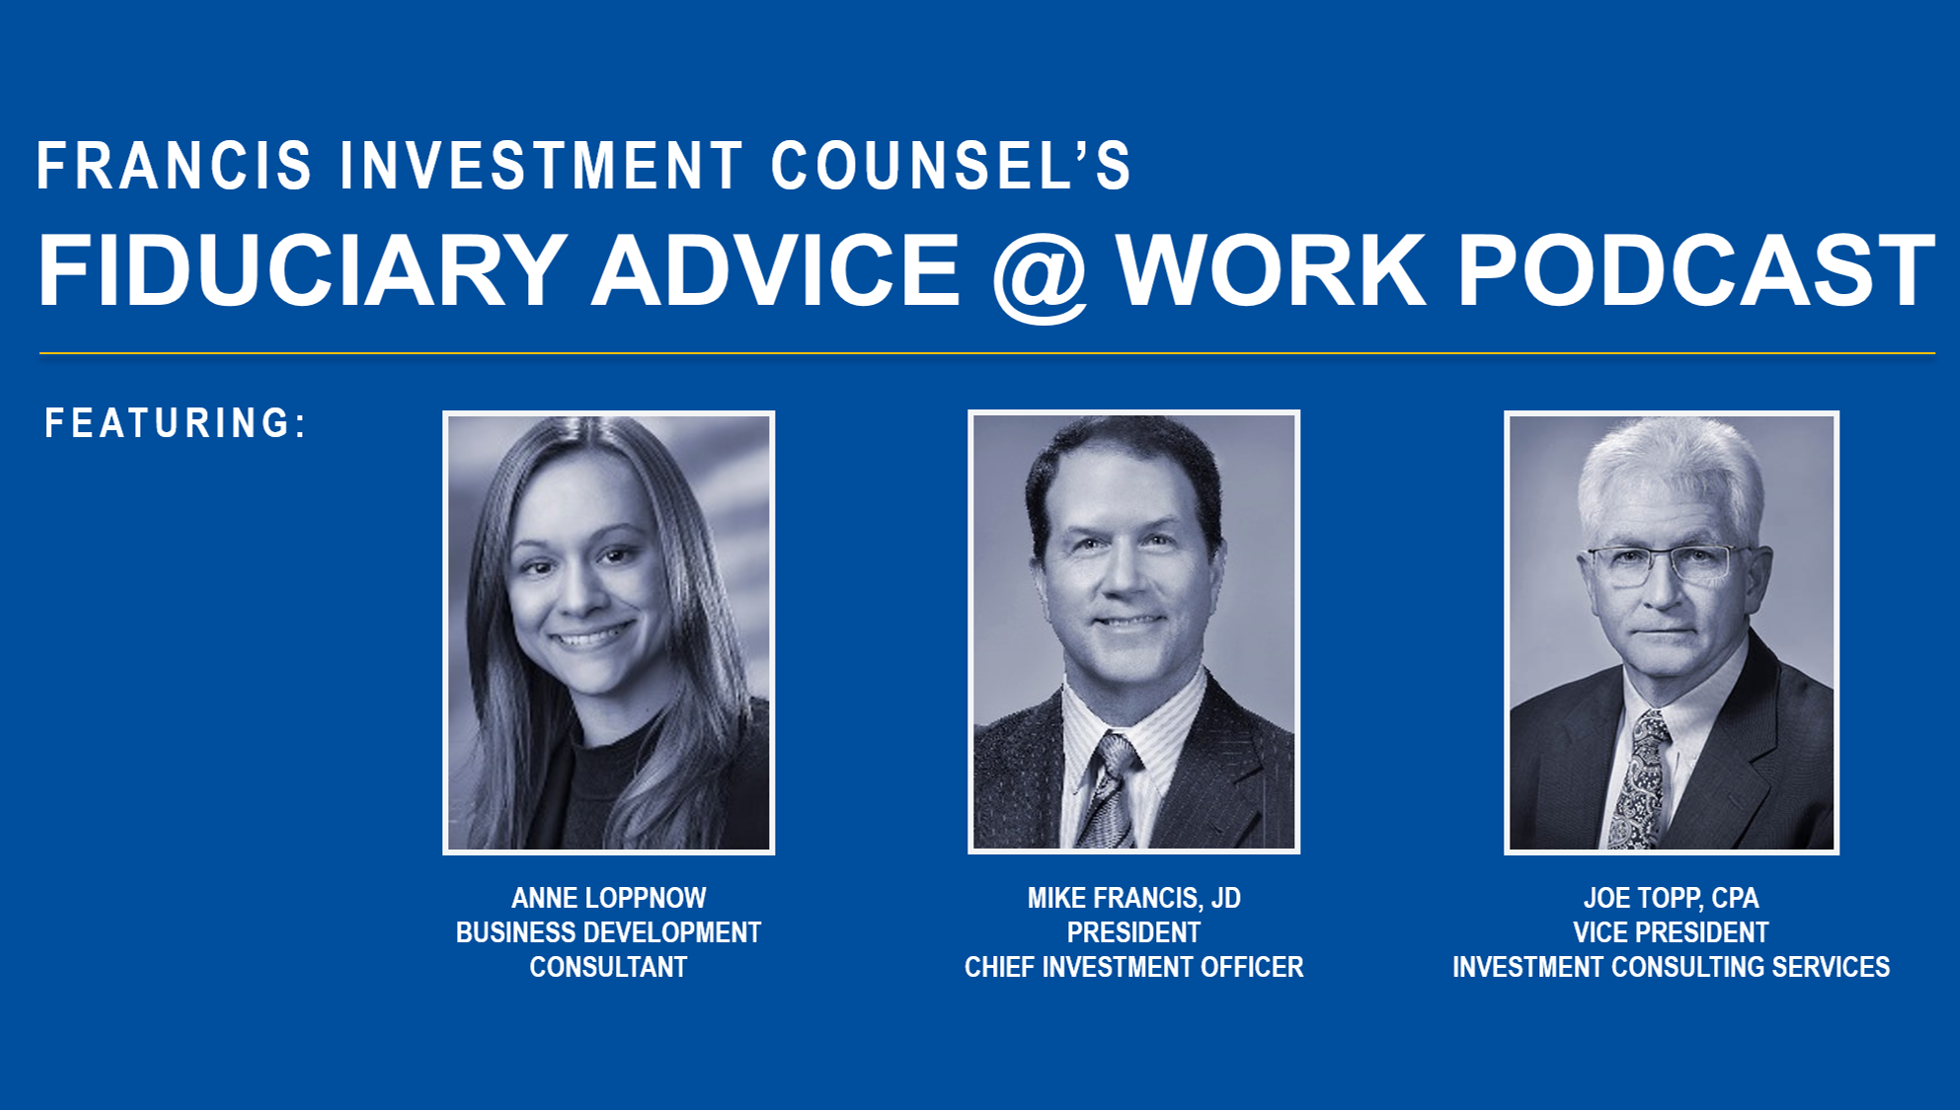 Francis Investment Counsel's Fiduciary Advice @ Work Podcast